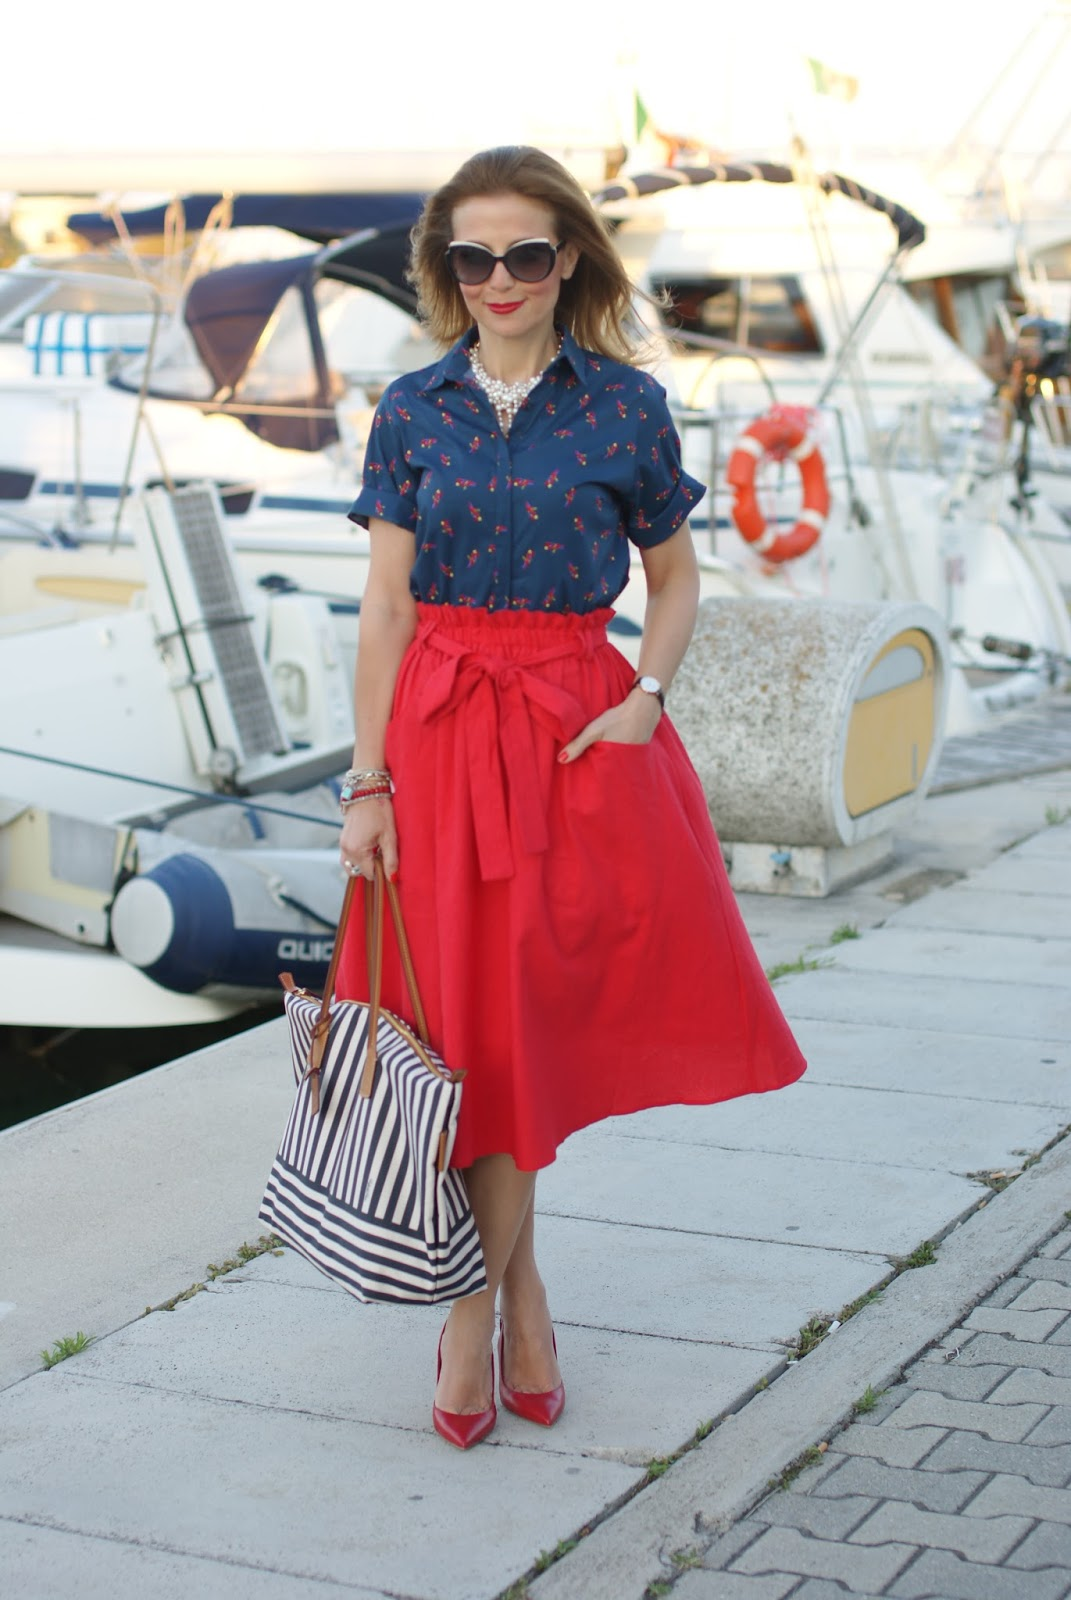 Roberta Pieri: Robertina bag for my summer holiday style | Fashion and  Cookies | Bloglovin'